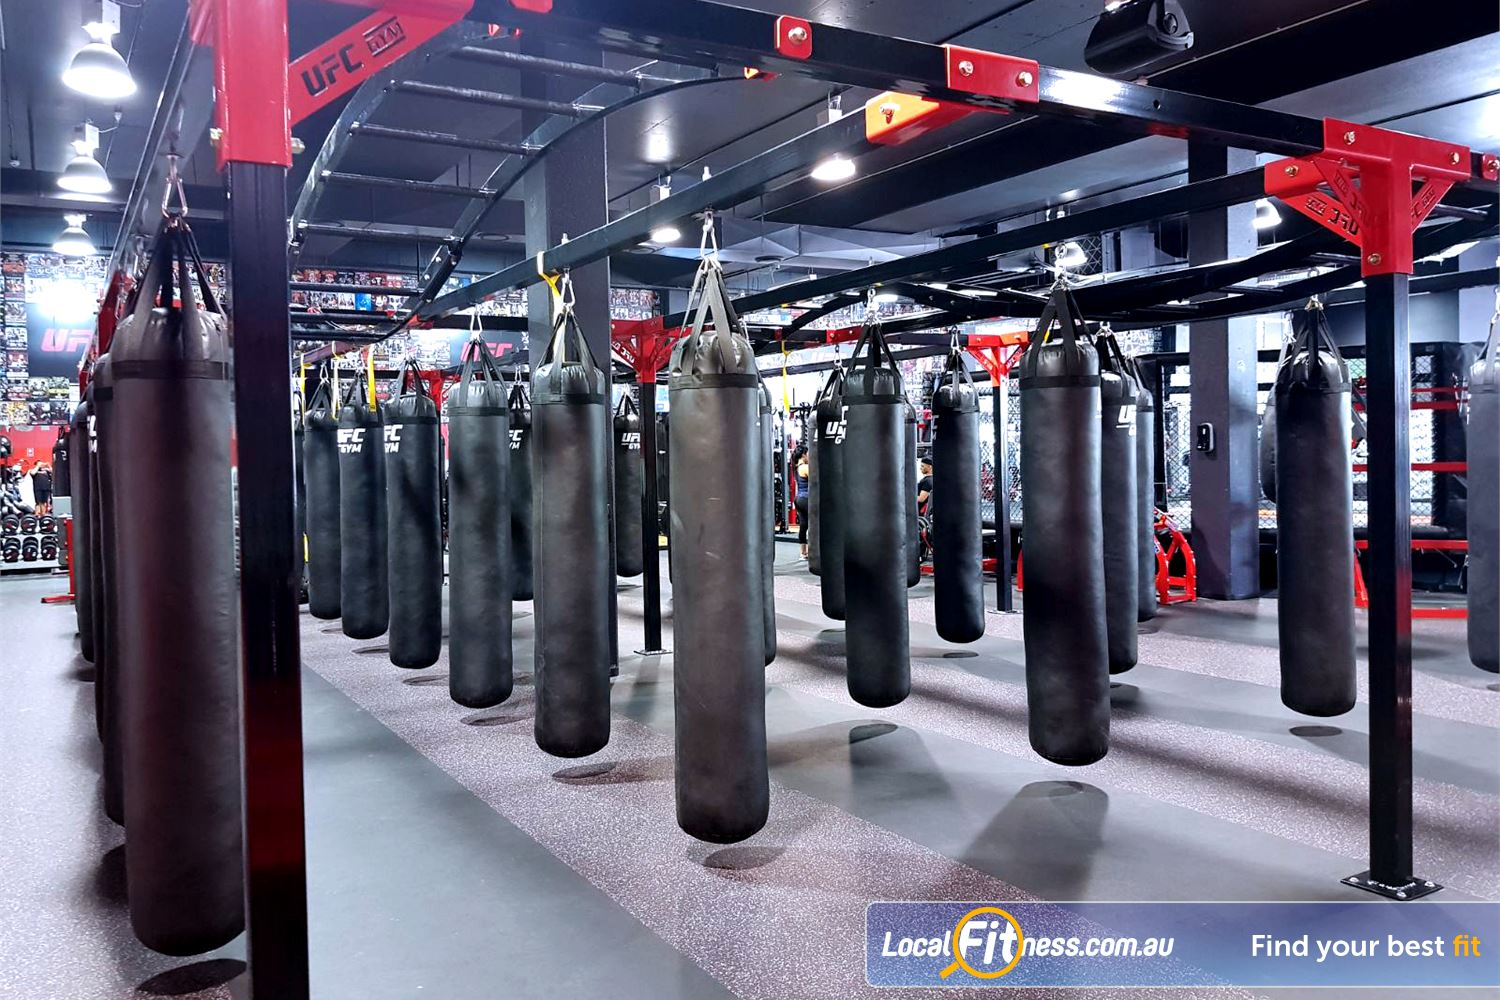 UFC Gym Blacktown Improve your striking in the boxing arena at UFC Gym.